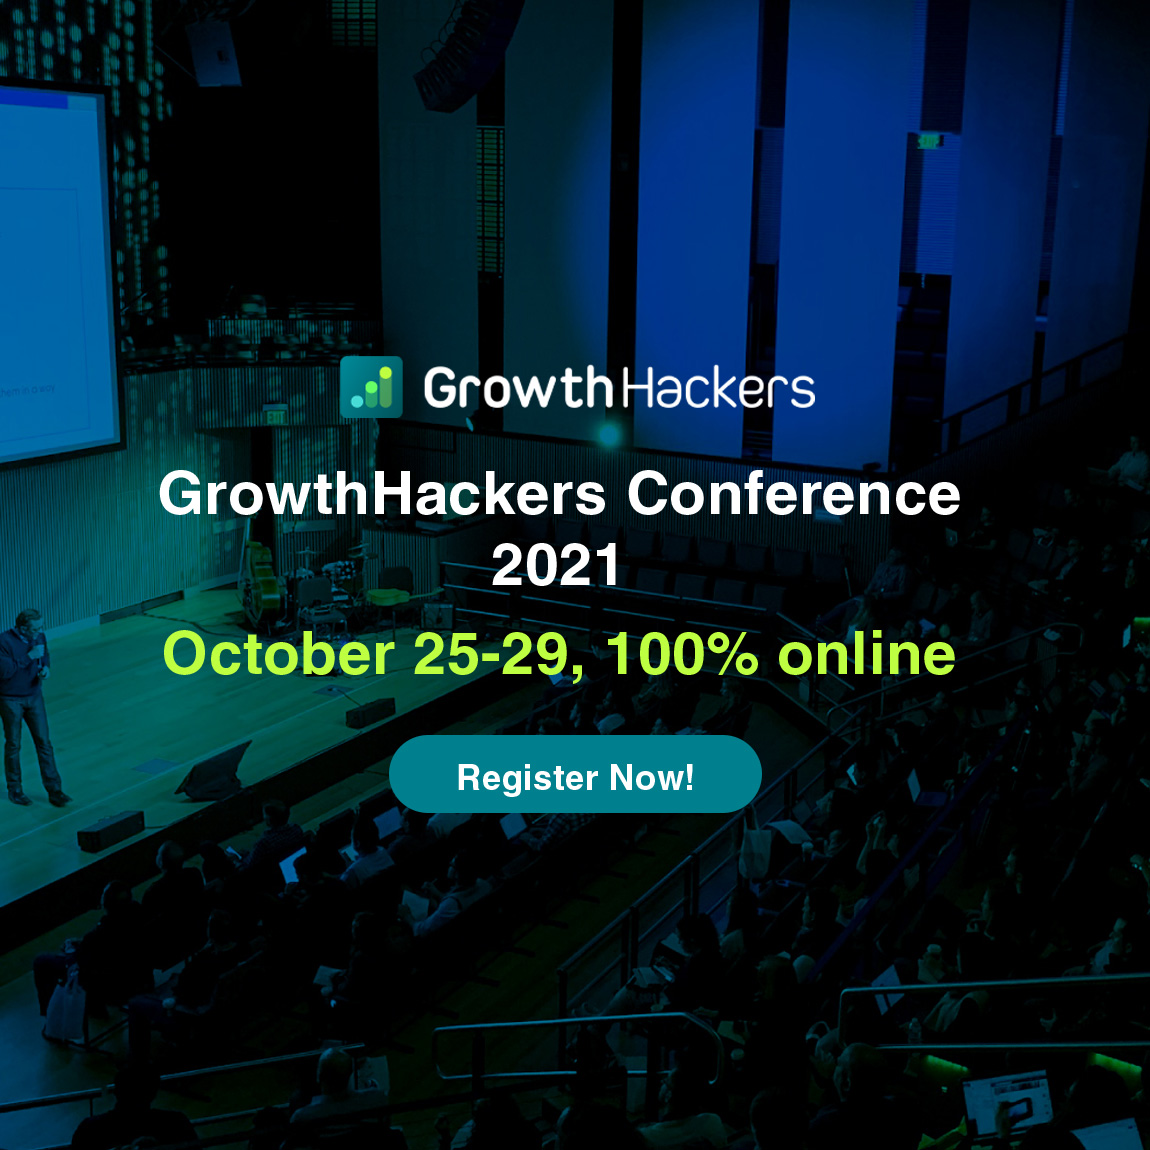 GrowthHackers Conference 2021